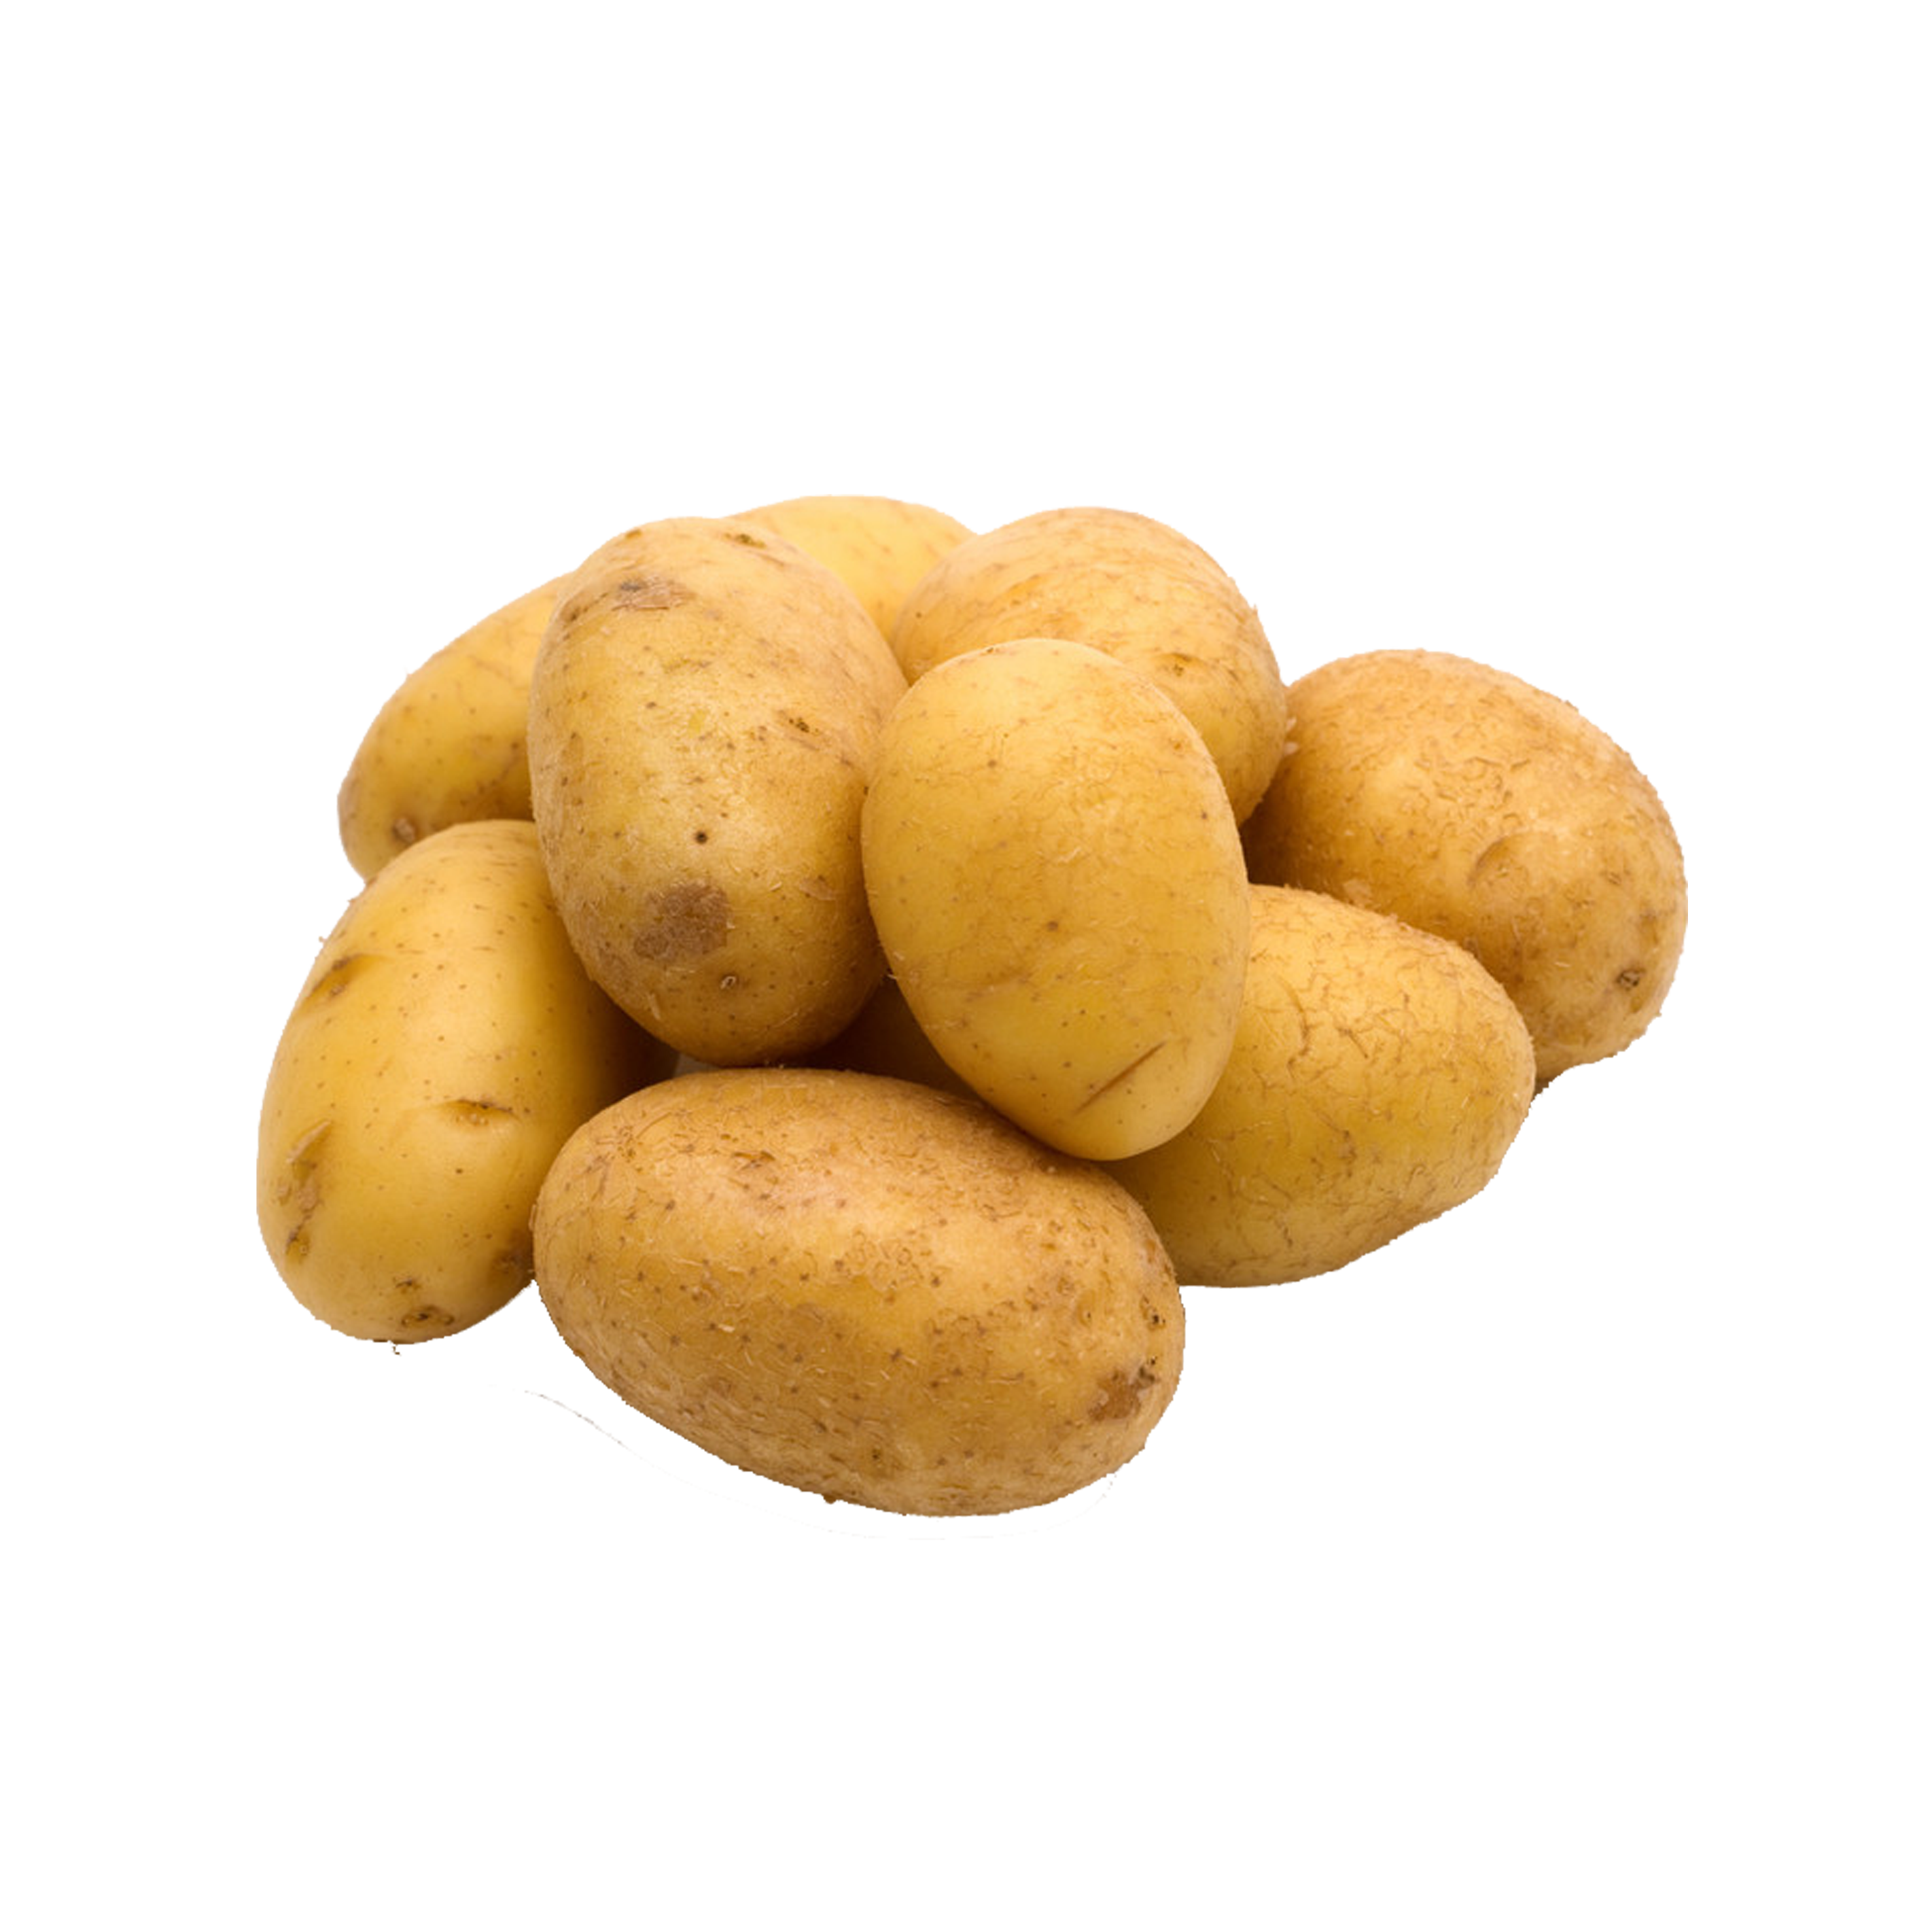 Potato clipping path clip. Roots clipart tuberous